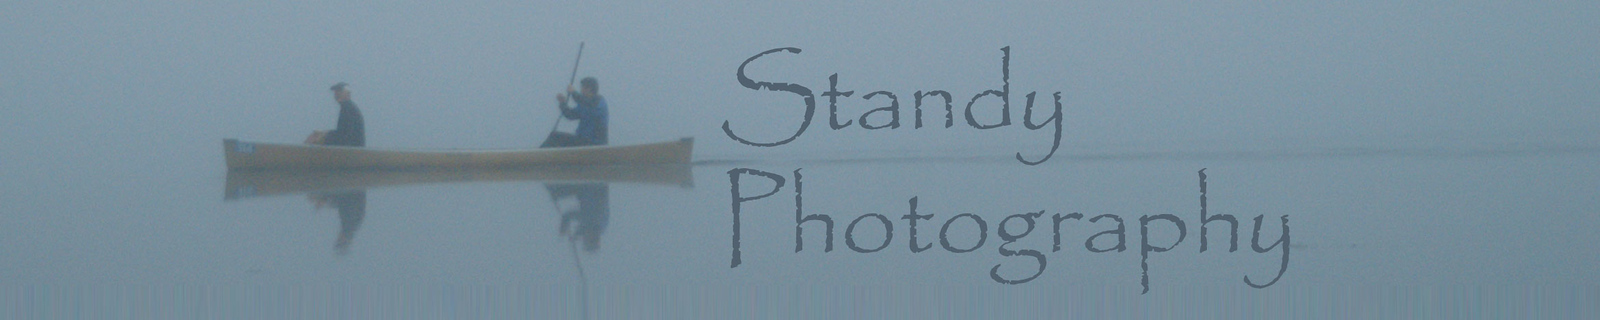 STANDY Photography